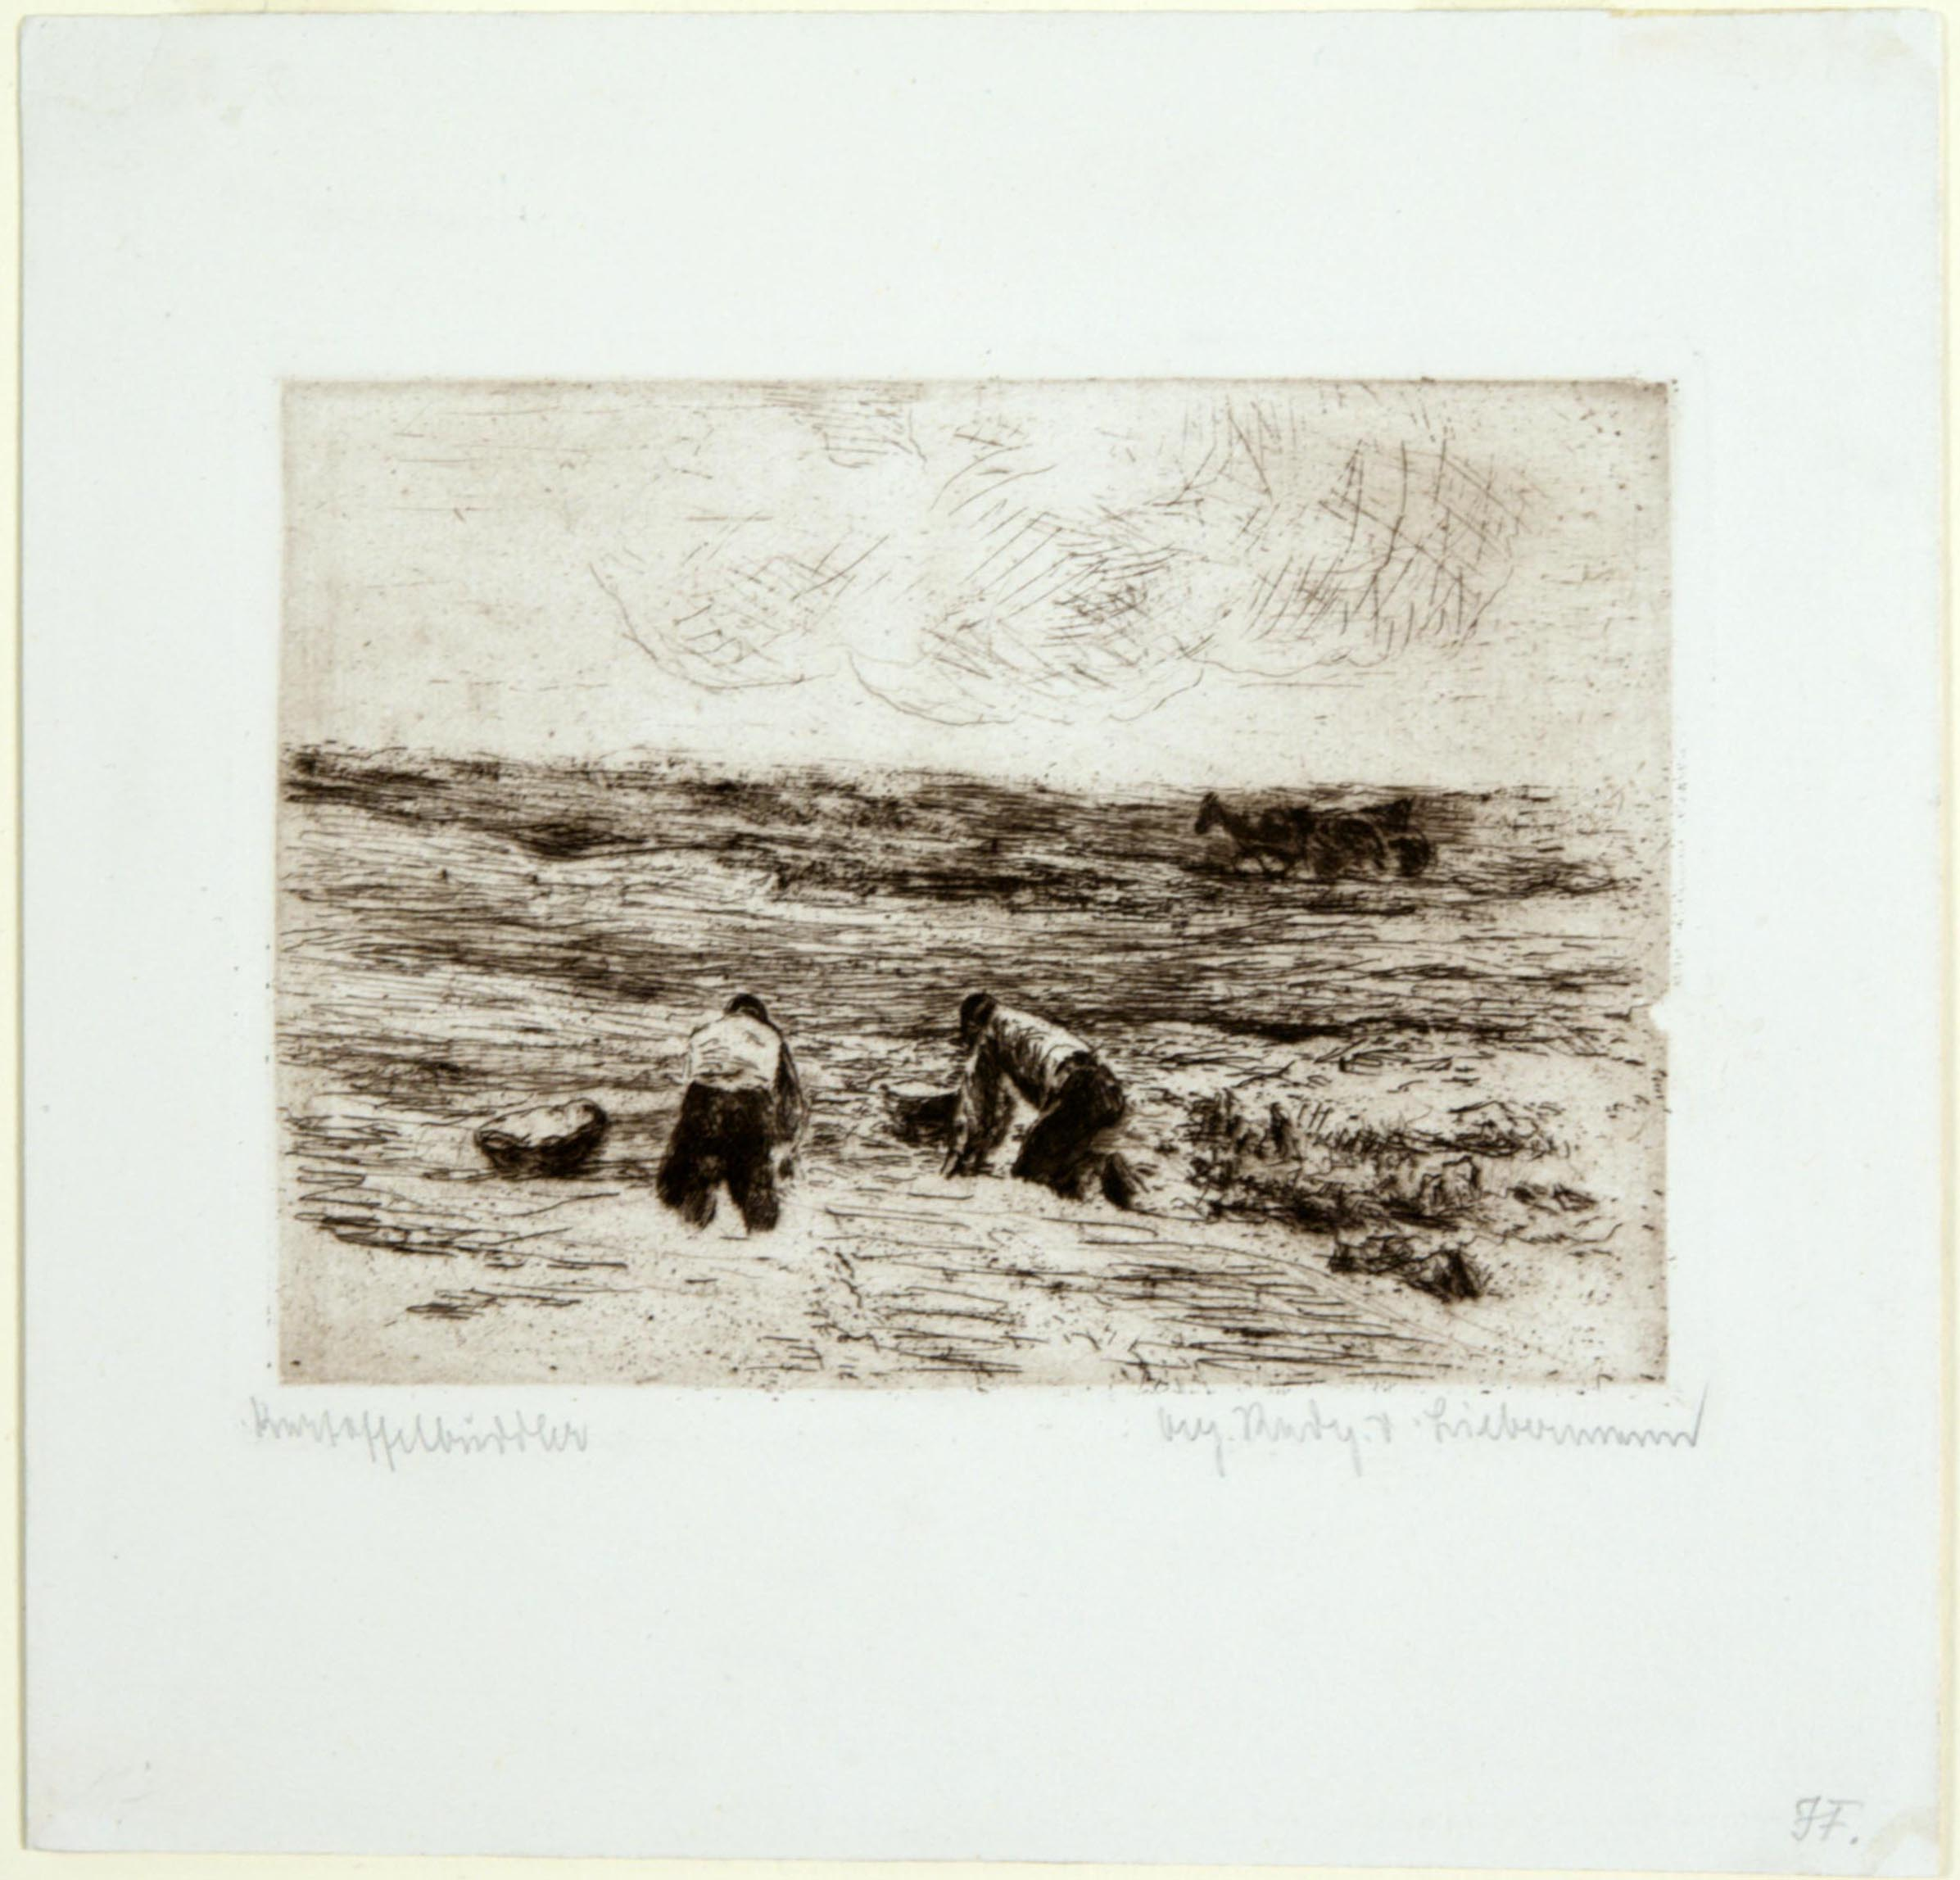 Max Liebermann, Potato Diggers, 1896